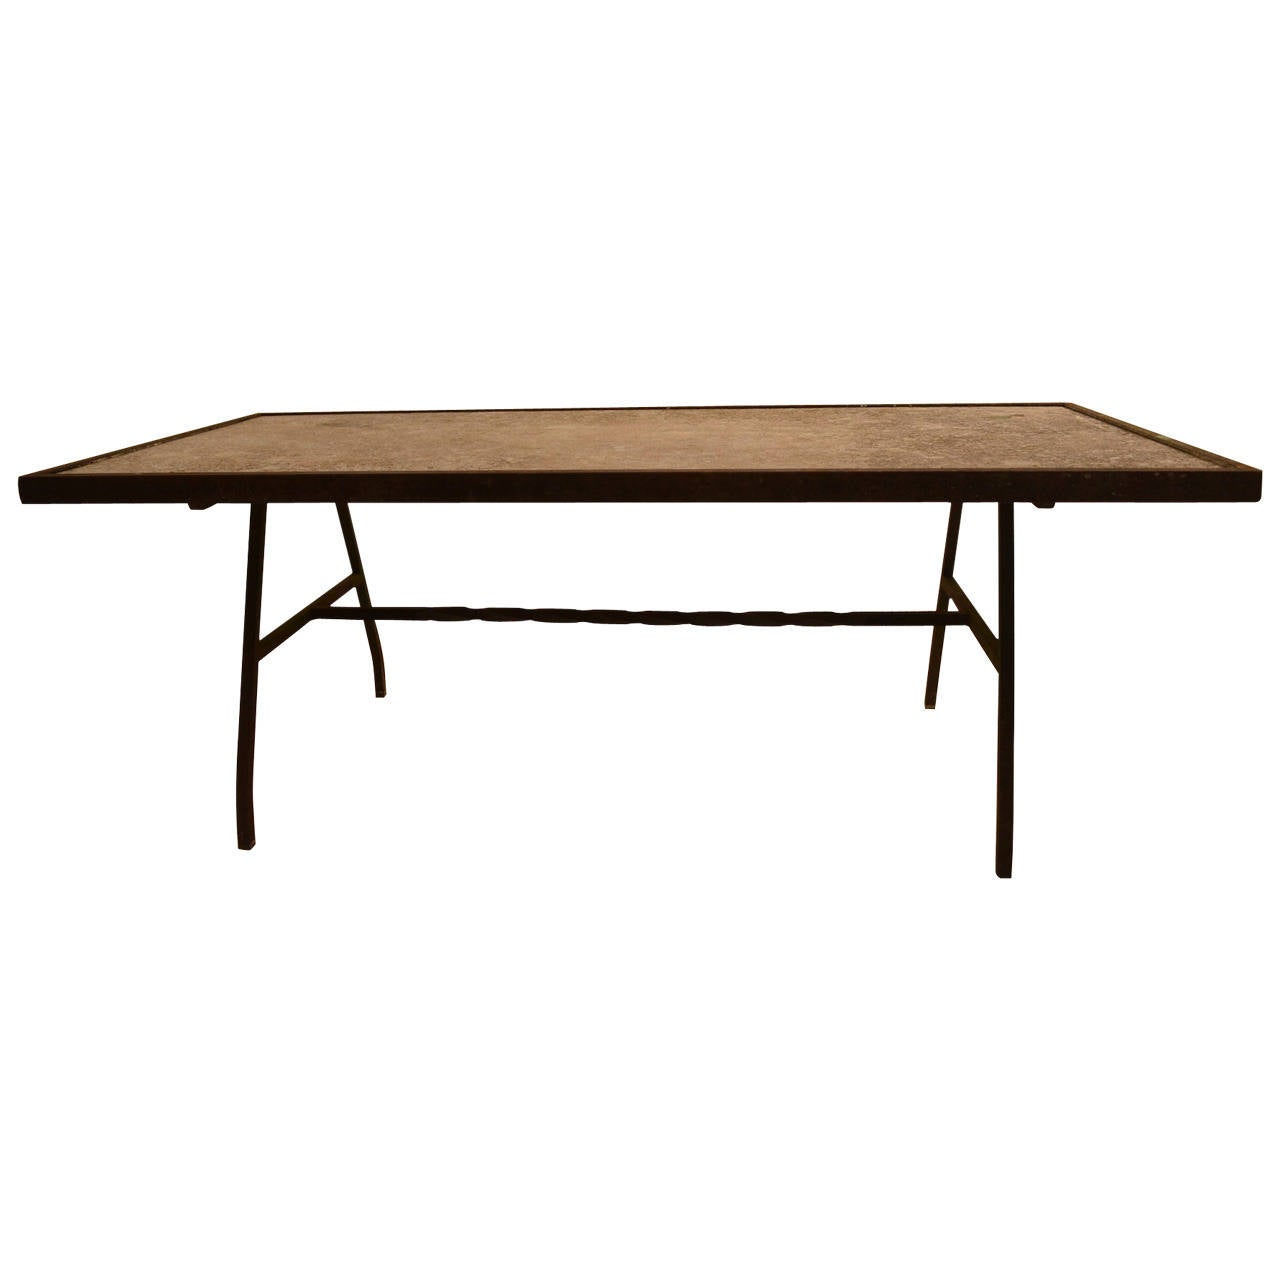 Stone top wrought iron base coffee table at 1stdibs for Stone and iron coffee table